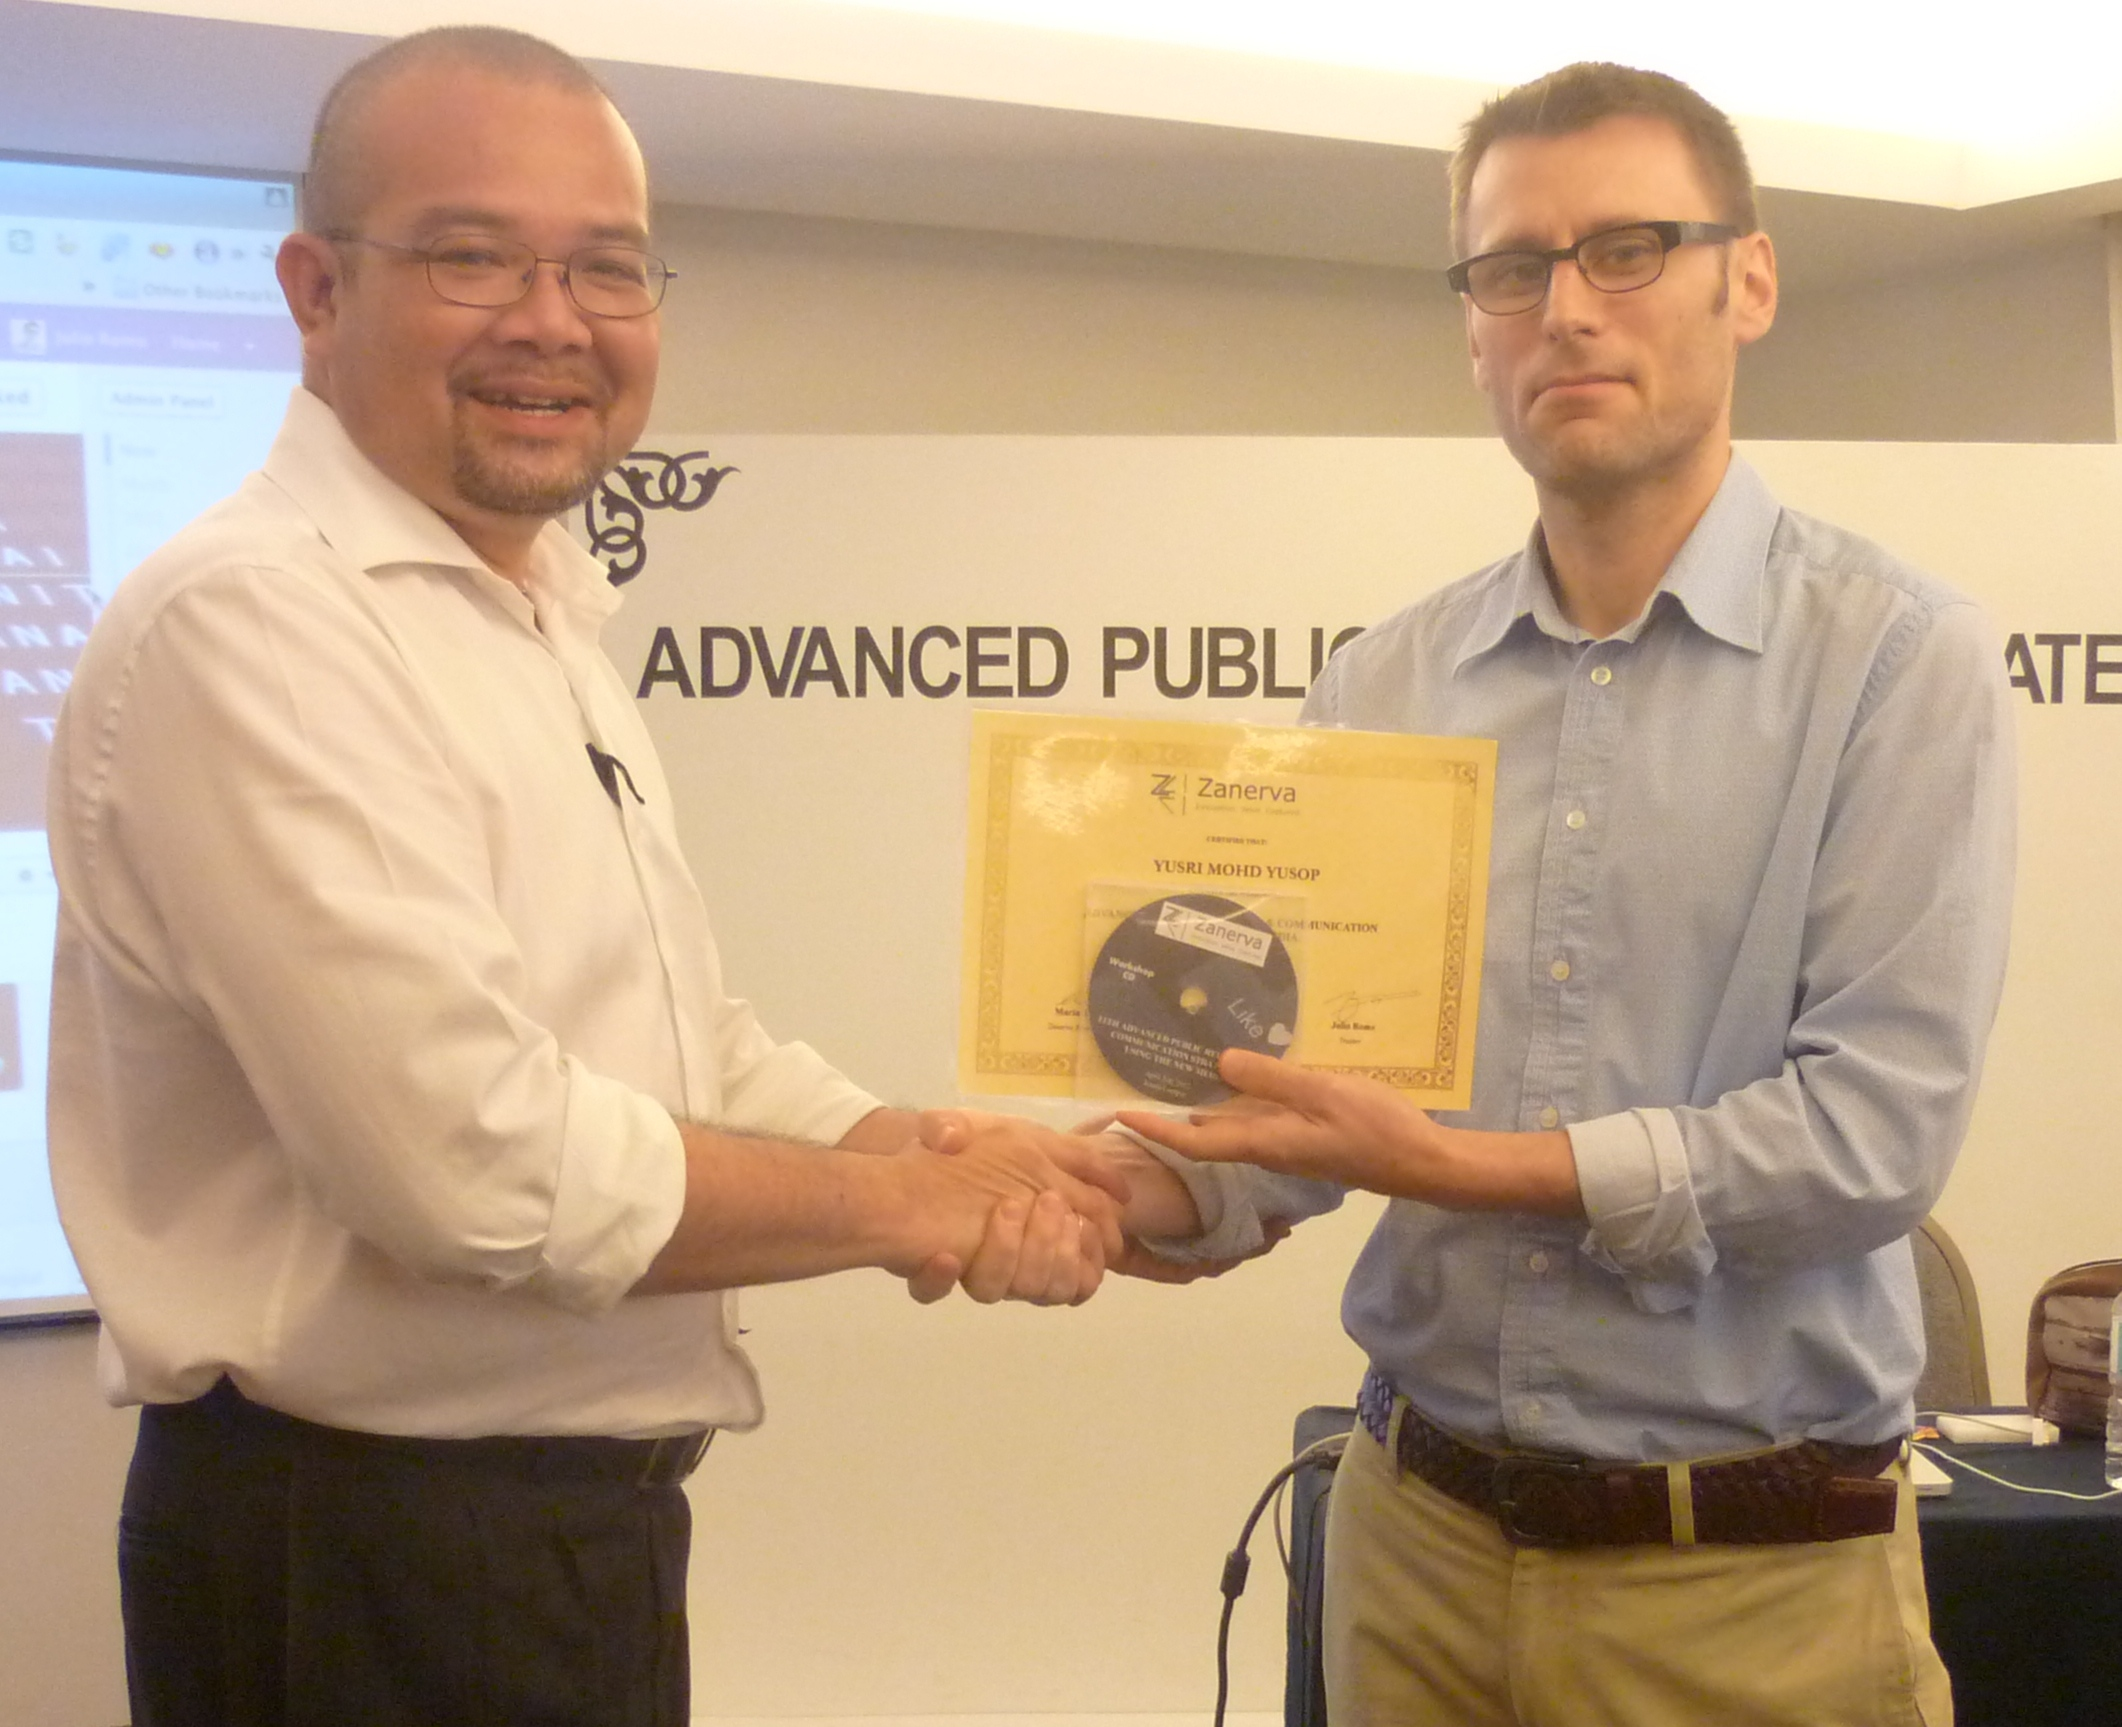 Yusri Mohd Yusop, PR Officer of the United Malays National Organization (UMNO)  receiving his certificate of workshop participation for attending the  Advanced Public Relations and Communication Strategies Using the New Media Workshop in Kuala Lumpur